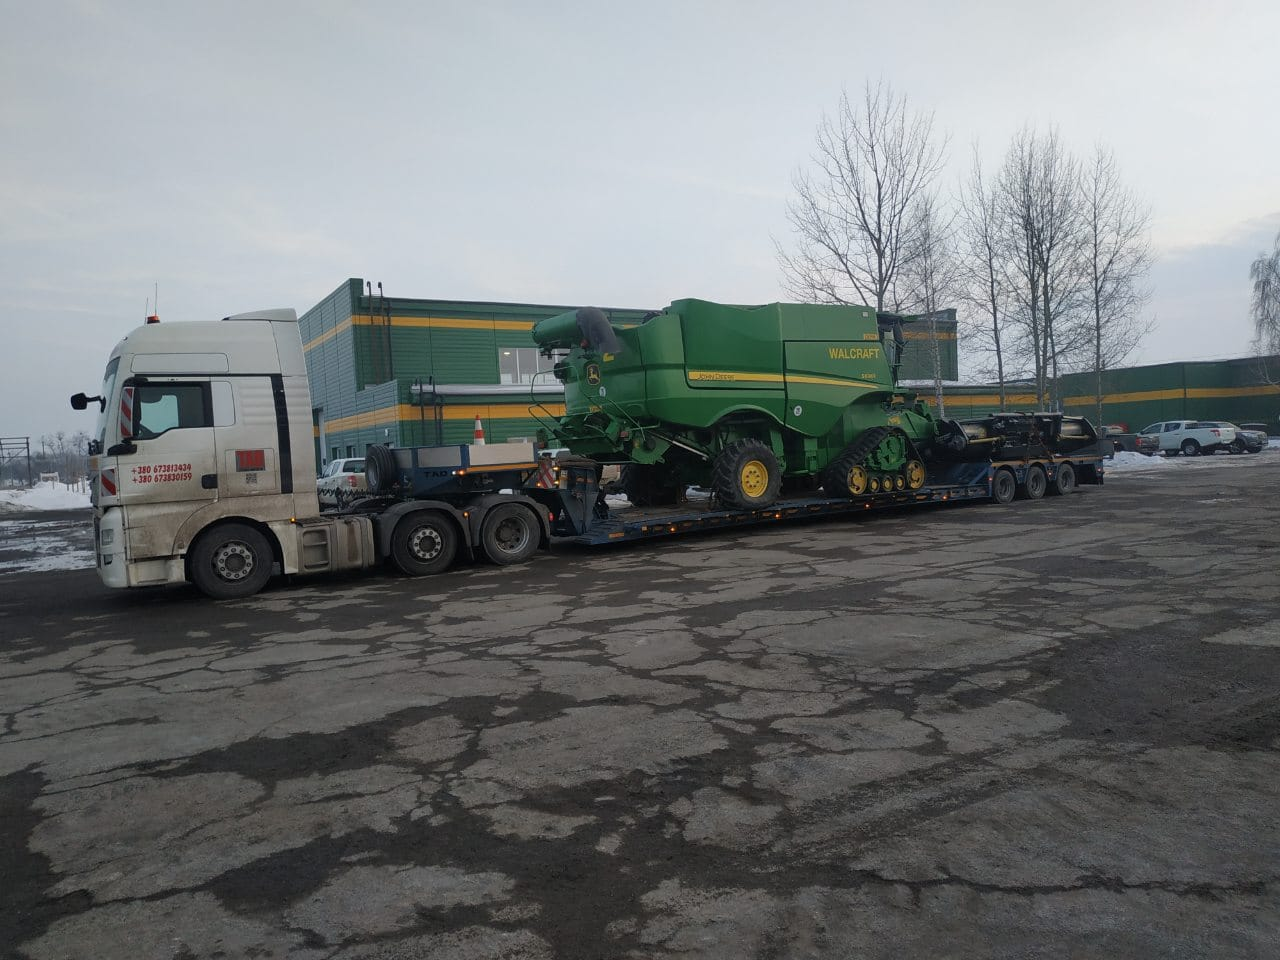 Transportation of the John Deere walcraft combine